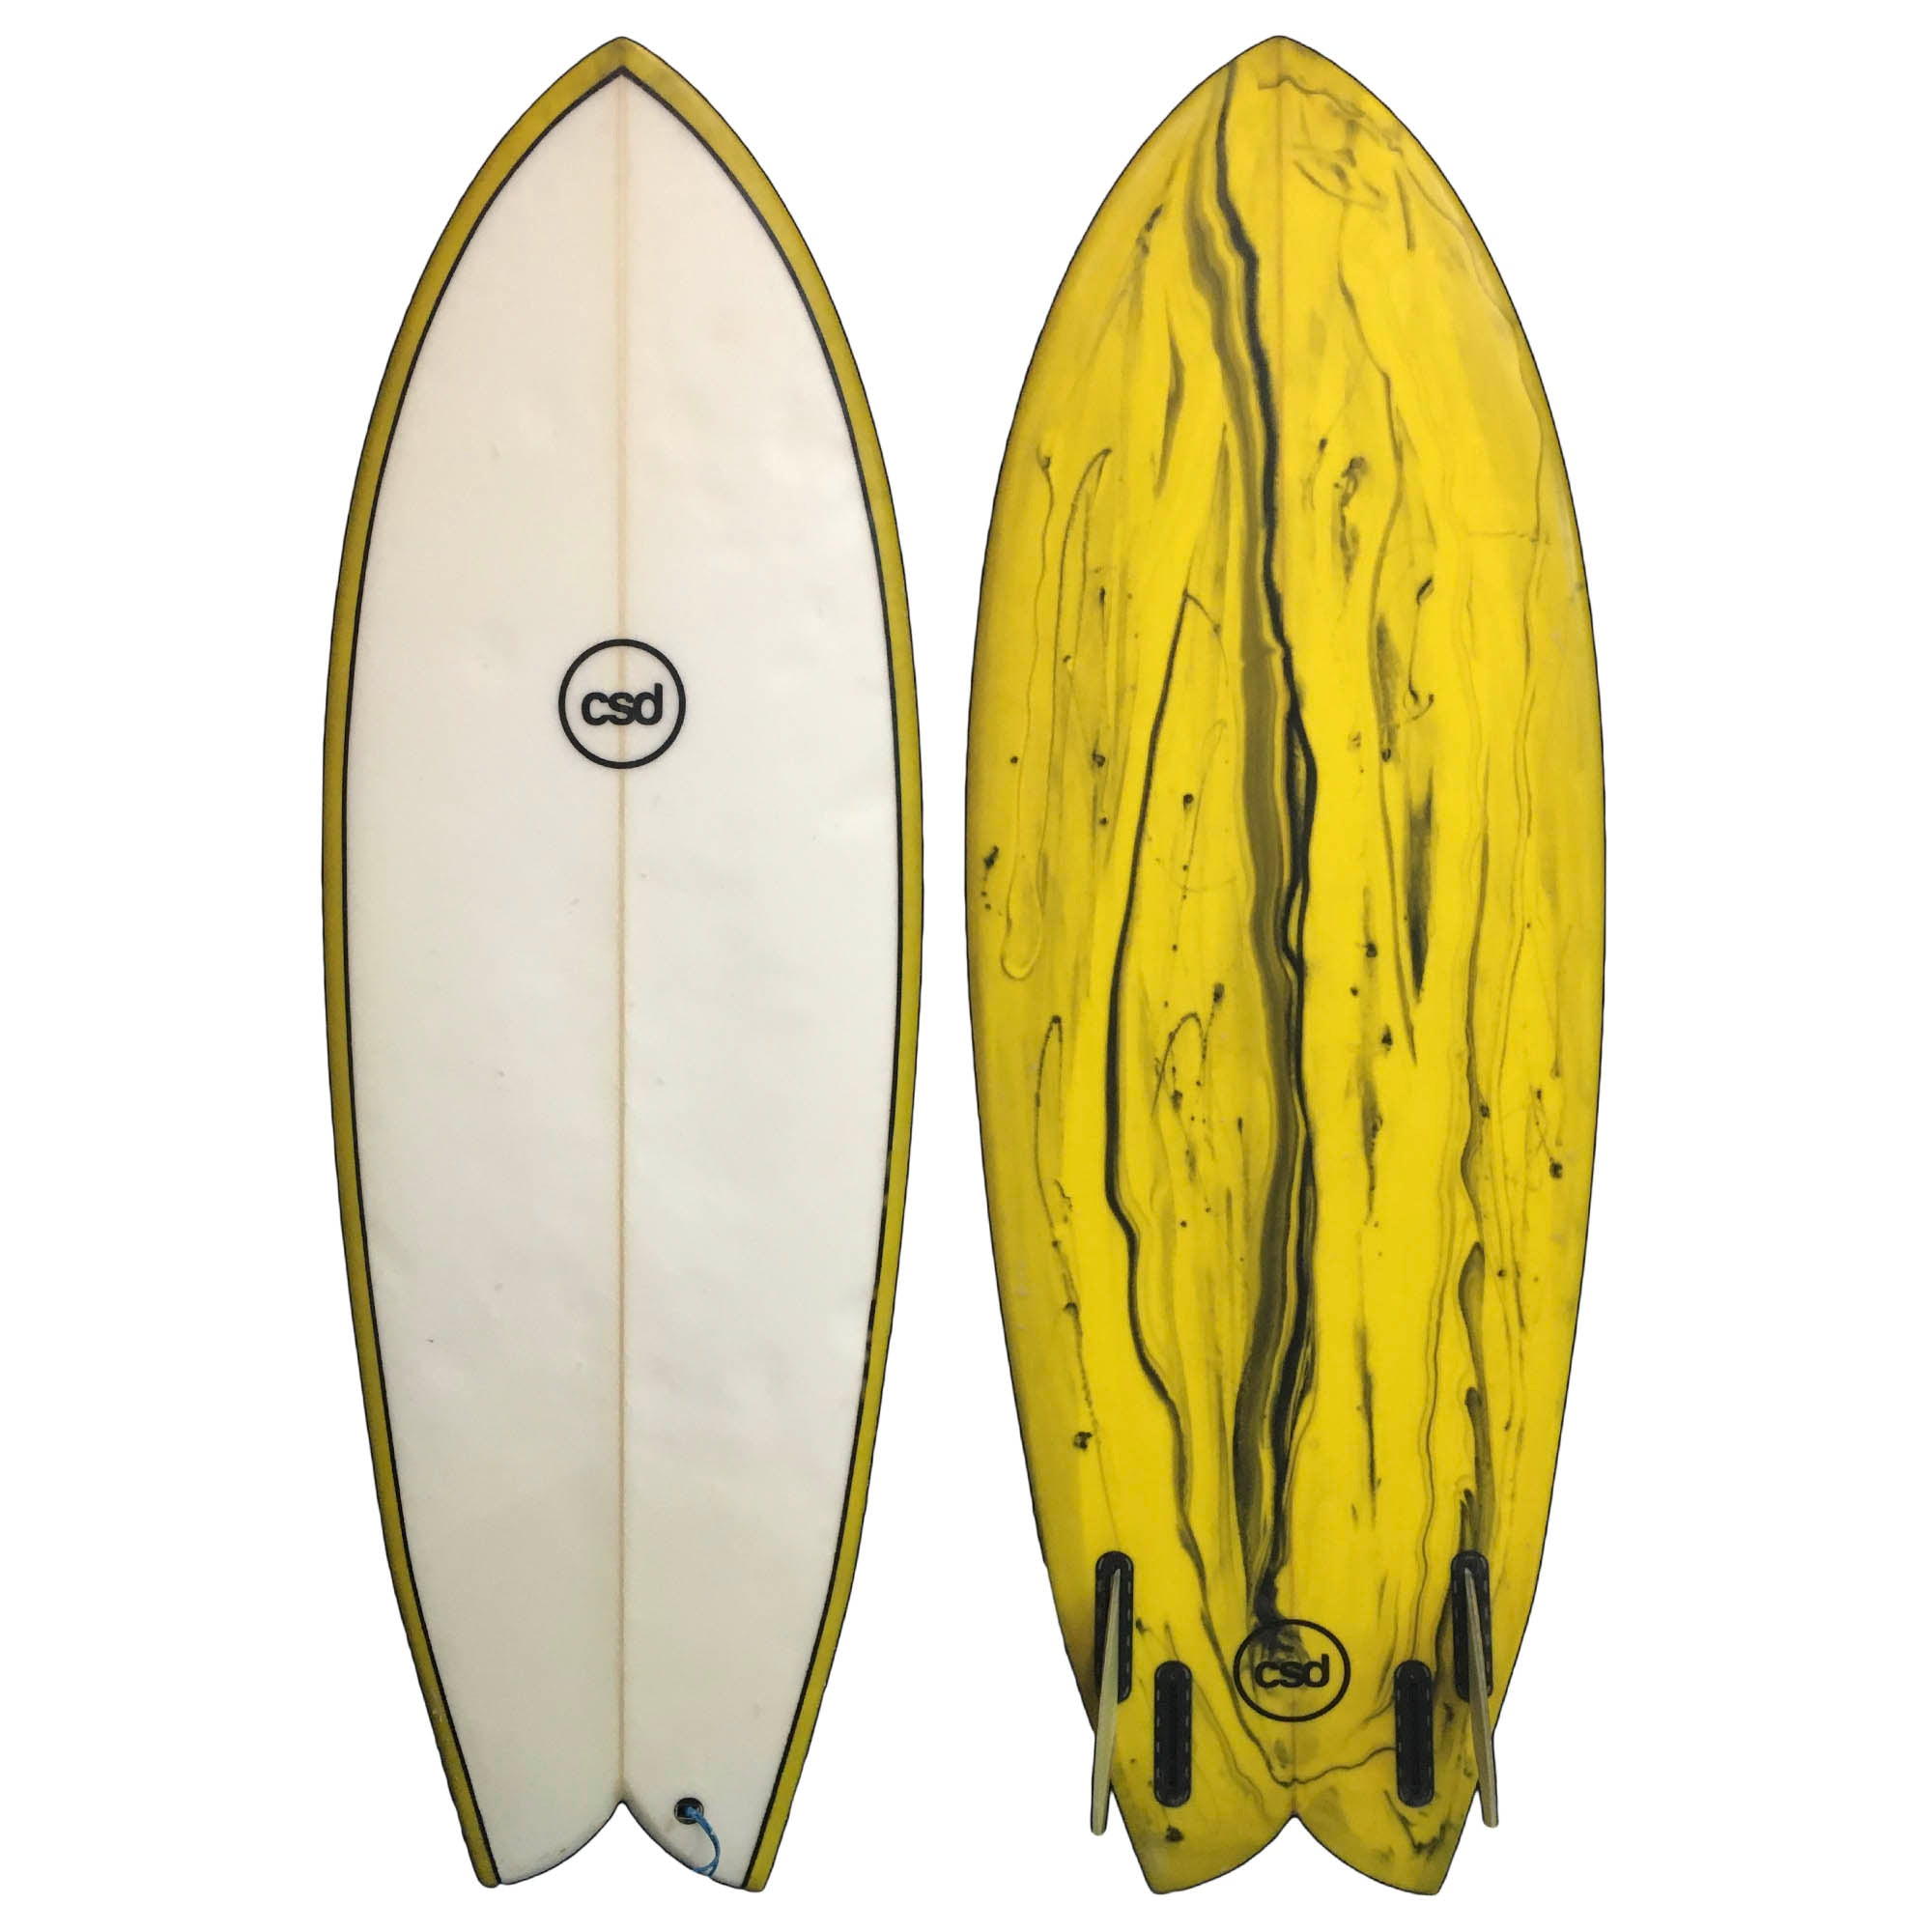 CSD Round Nose Fish Retro 5'1 Used Surfboard